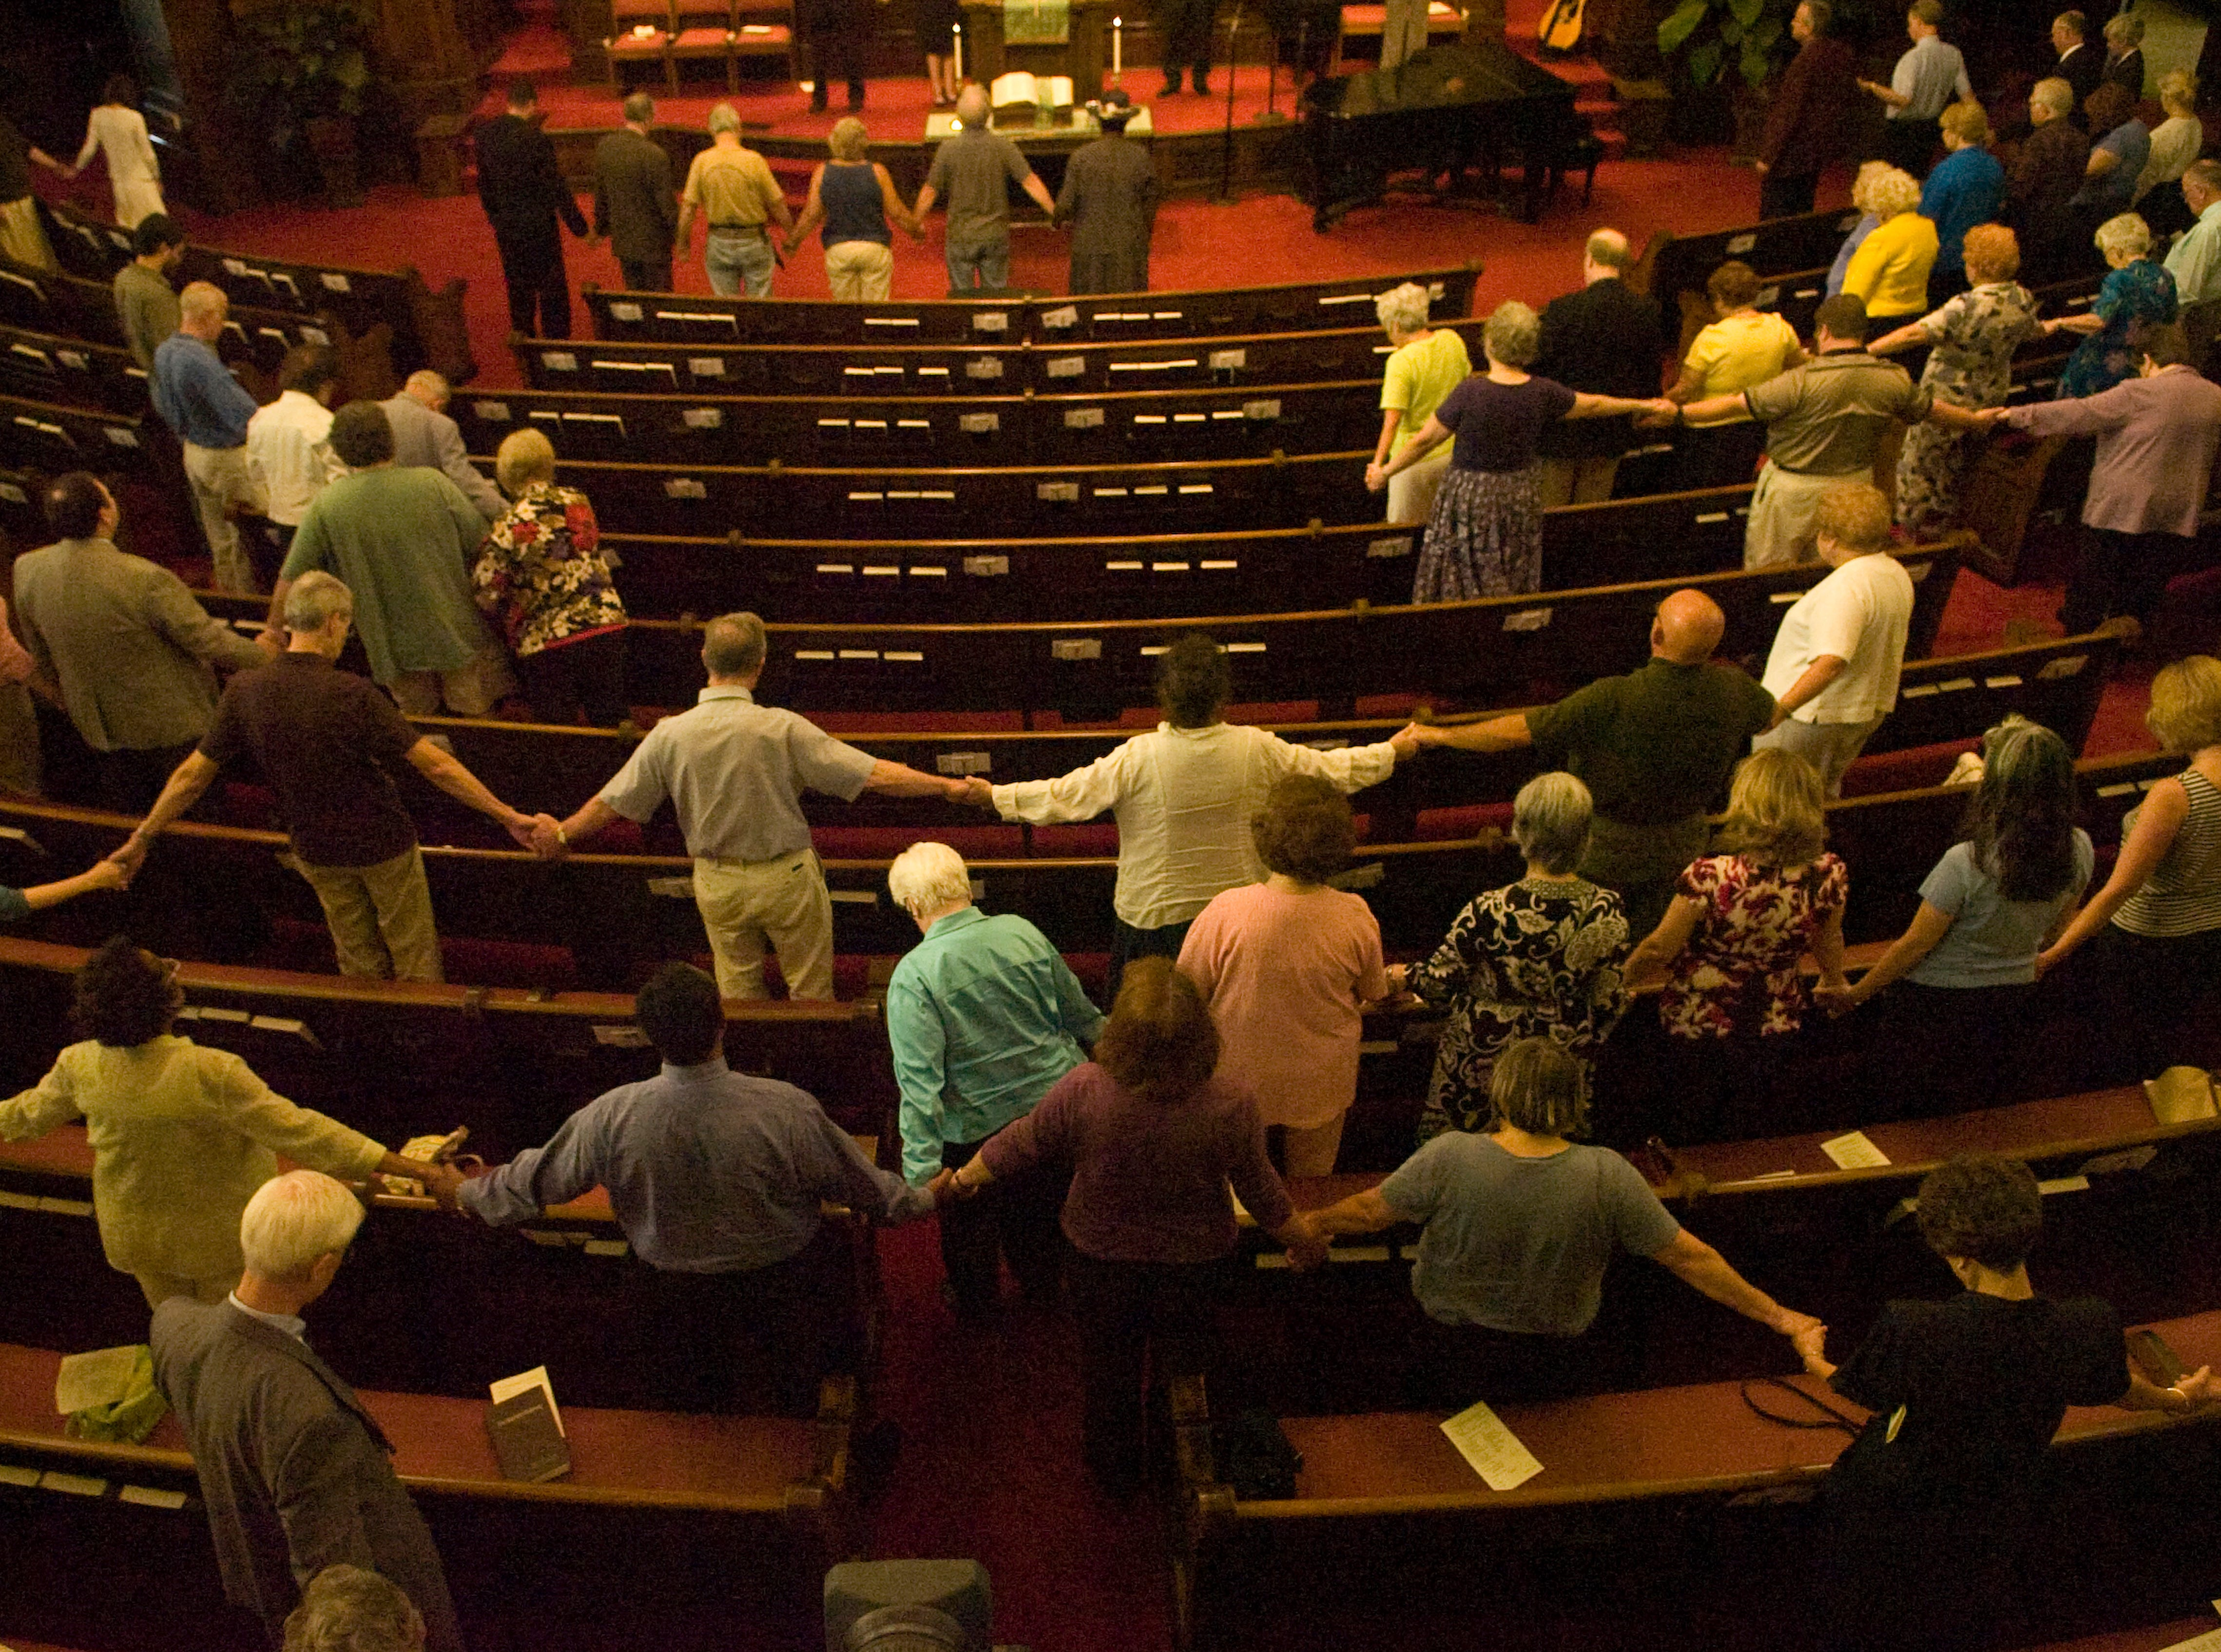 More than 150 people join hands in prayer Tuesday, July 29, 2008, during a noon ecumenical service at First Baptist Church of Knoxville for the Tennessee Valley Unitarian Universalist Church congregation and the victims of a Sunday morning shooting.